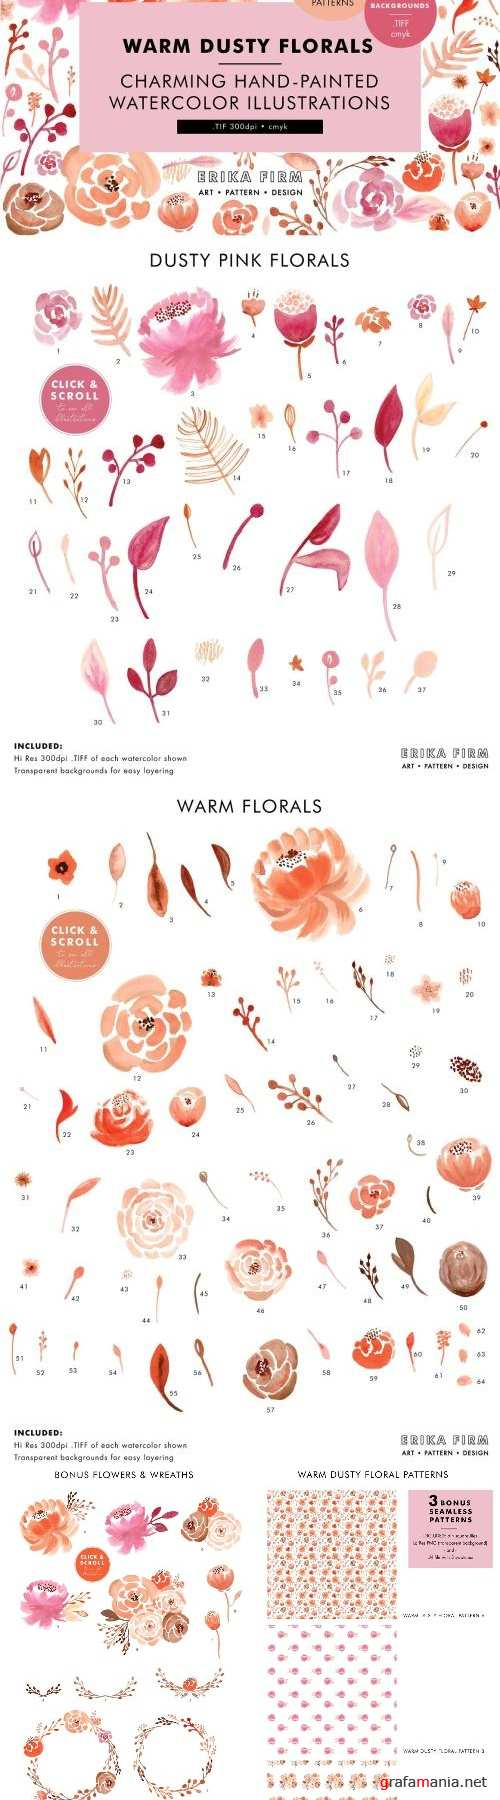 Warm Dusty Watercolor Florals - 1966376